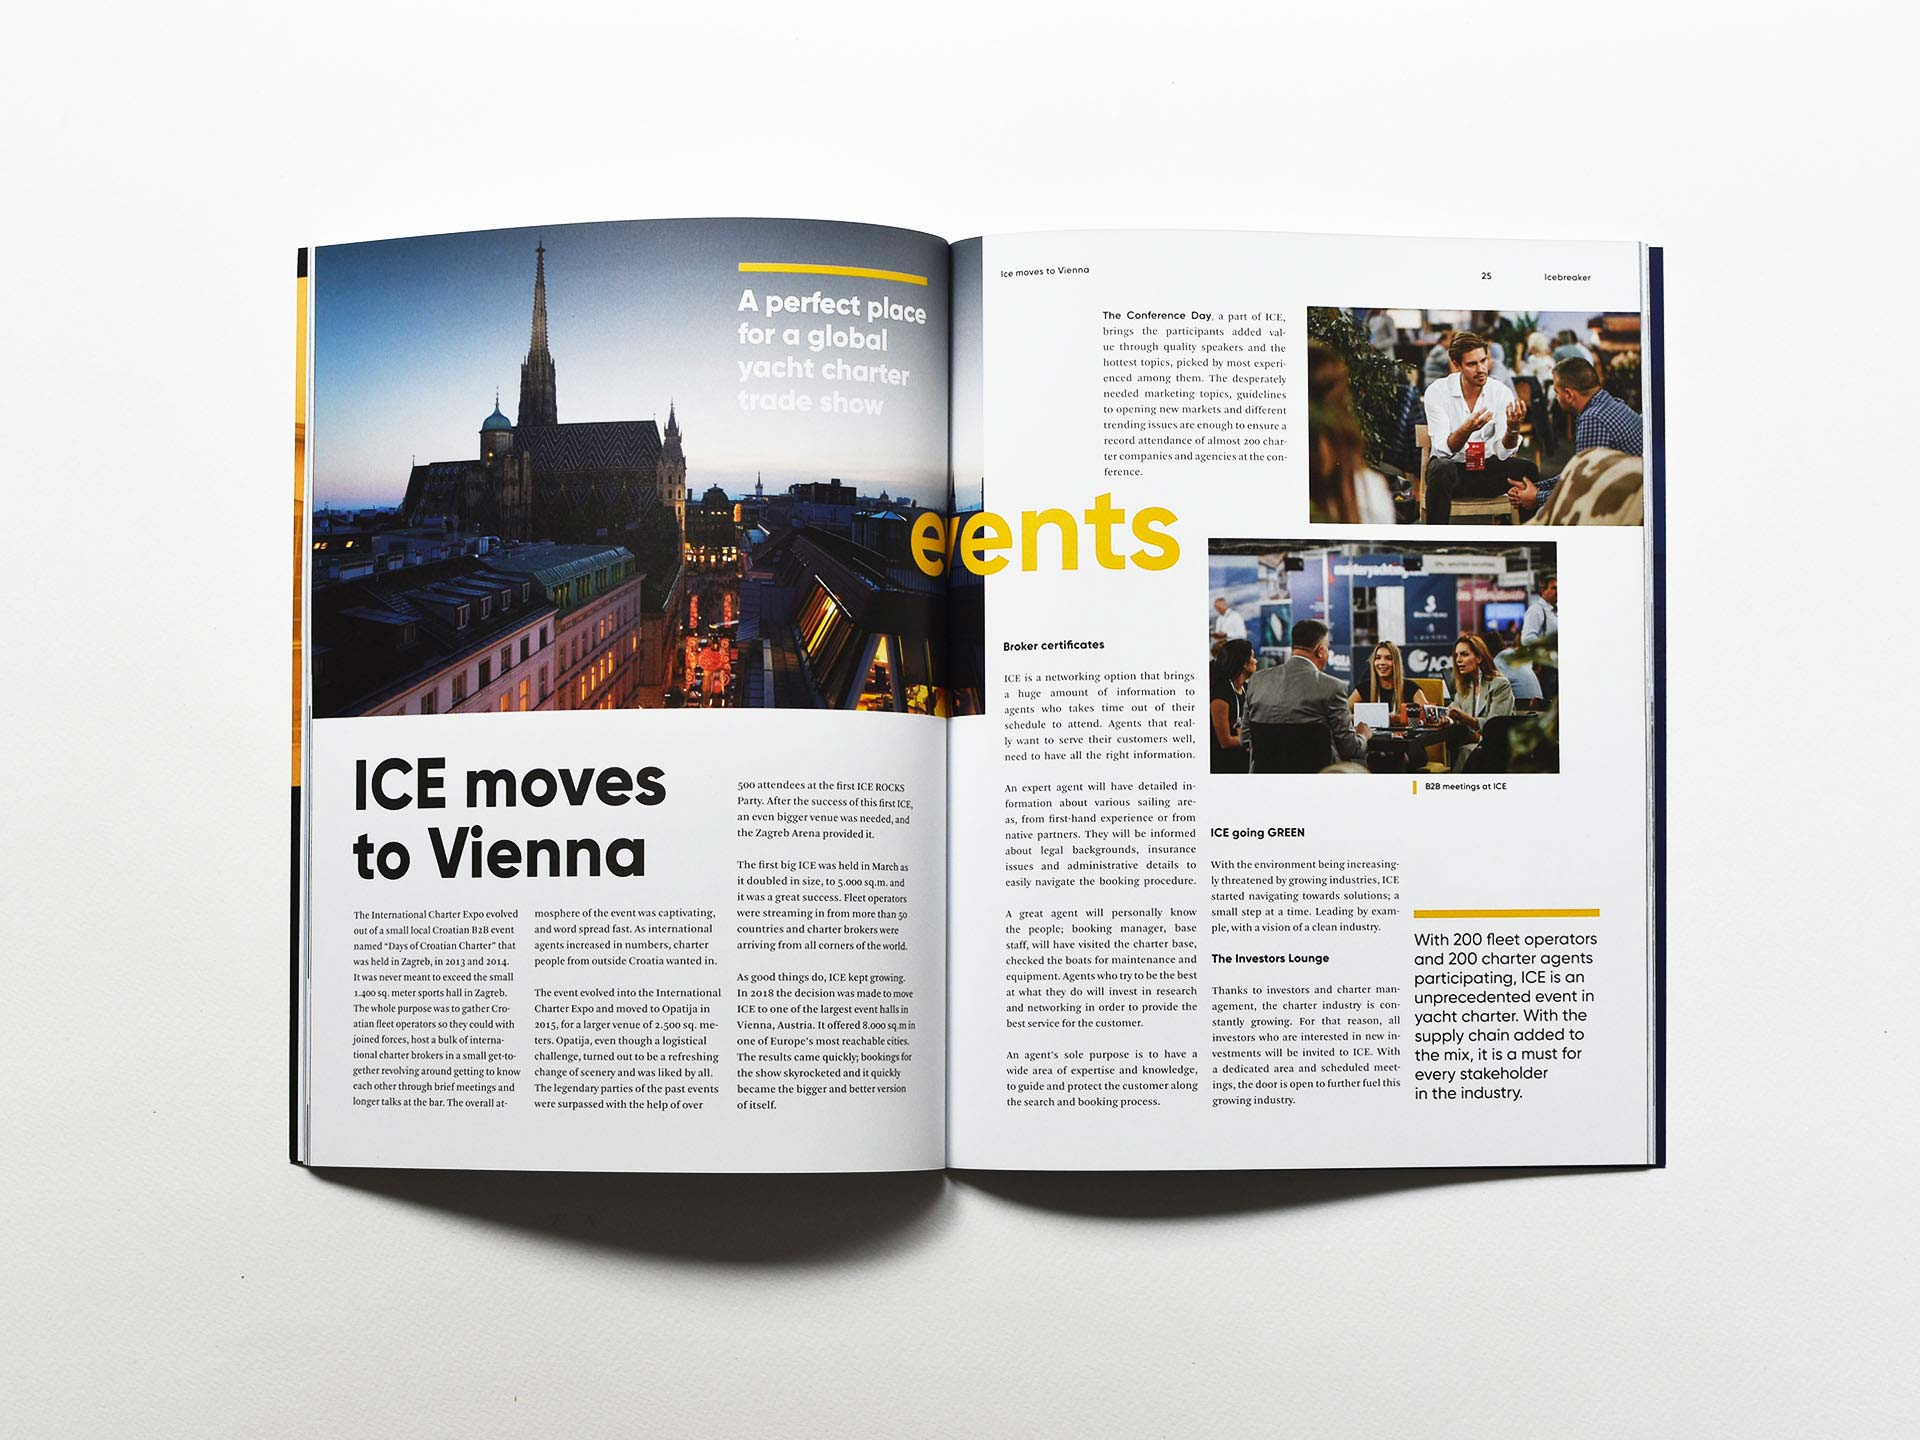 ICE moves to Vienna Icebreaker